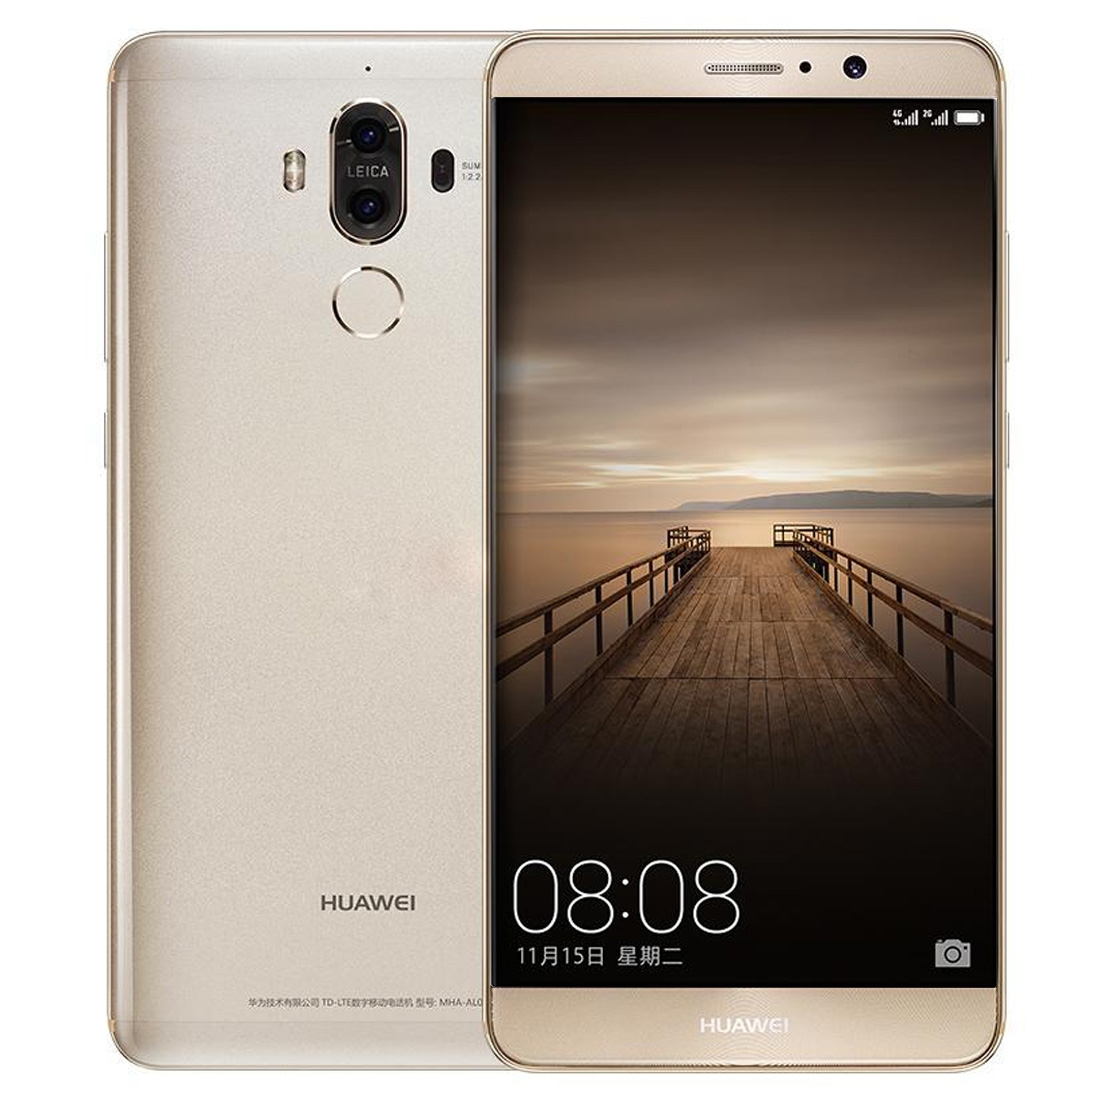 Huawei Mate 9, 4GB+64GB, plus smart hod. U80, gold